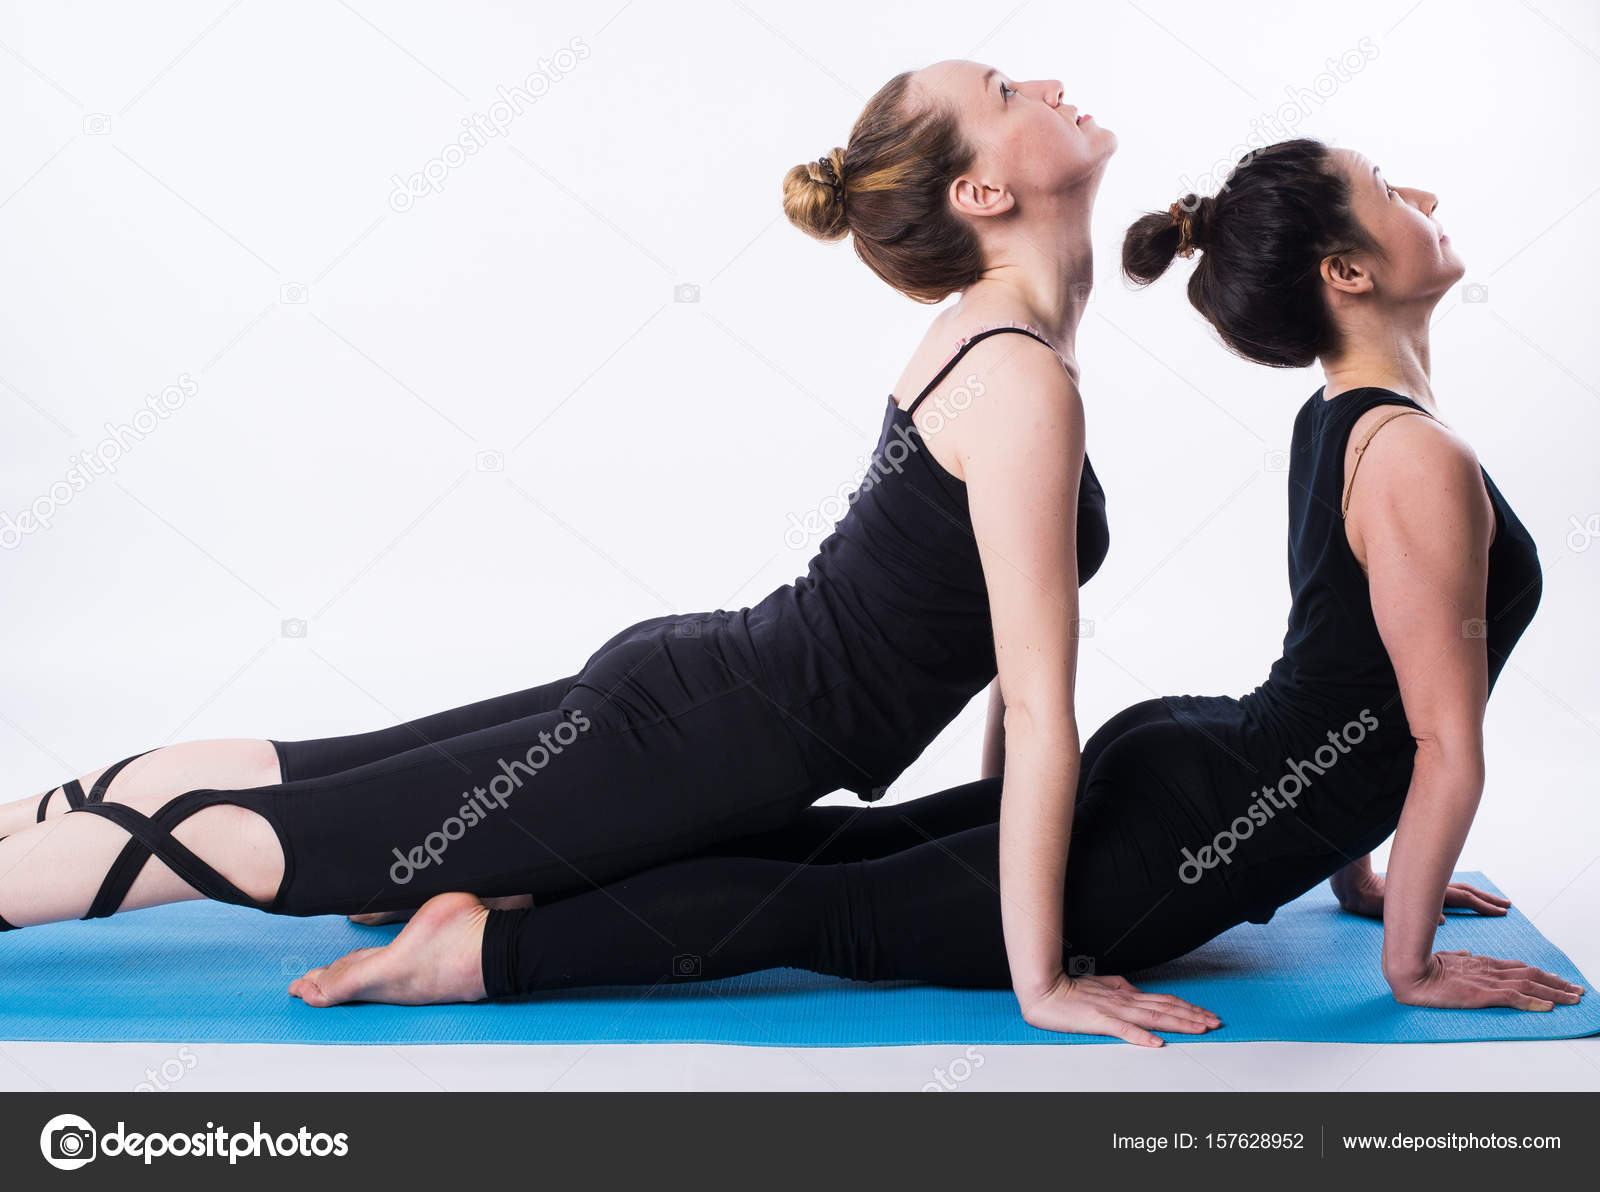 Double Person Yoga Poses Fitness Practice Group Of Two Beautiful Fit Young People Working Out In Sports Club Doing Stretching Exercises Together In Class Double Downward Facing Dog Yoga Pose Adho